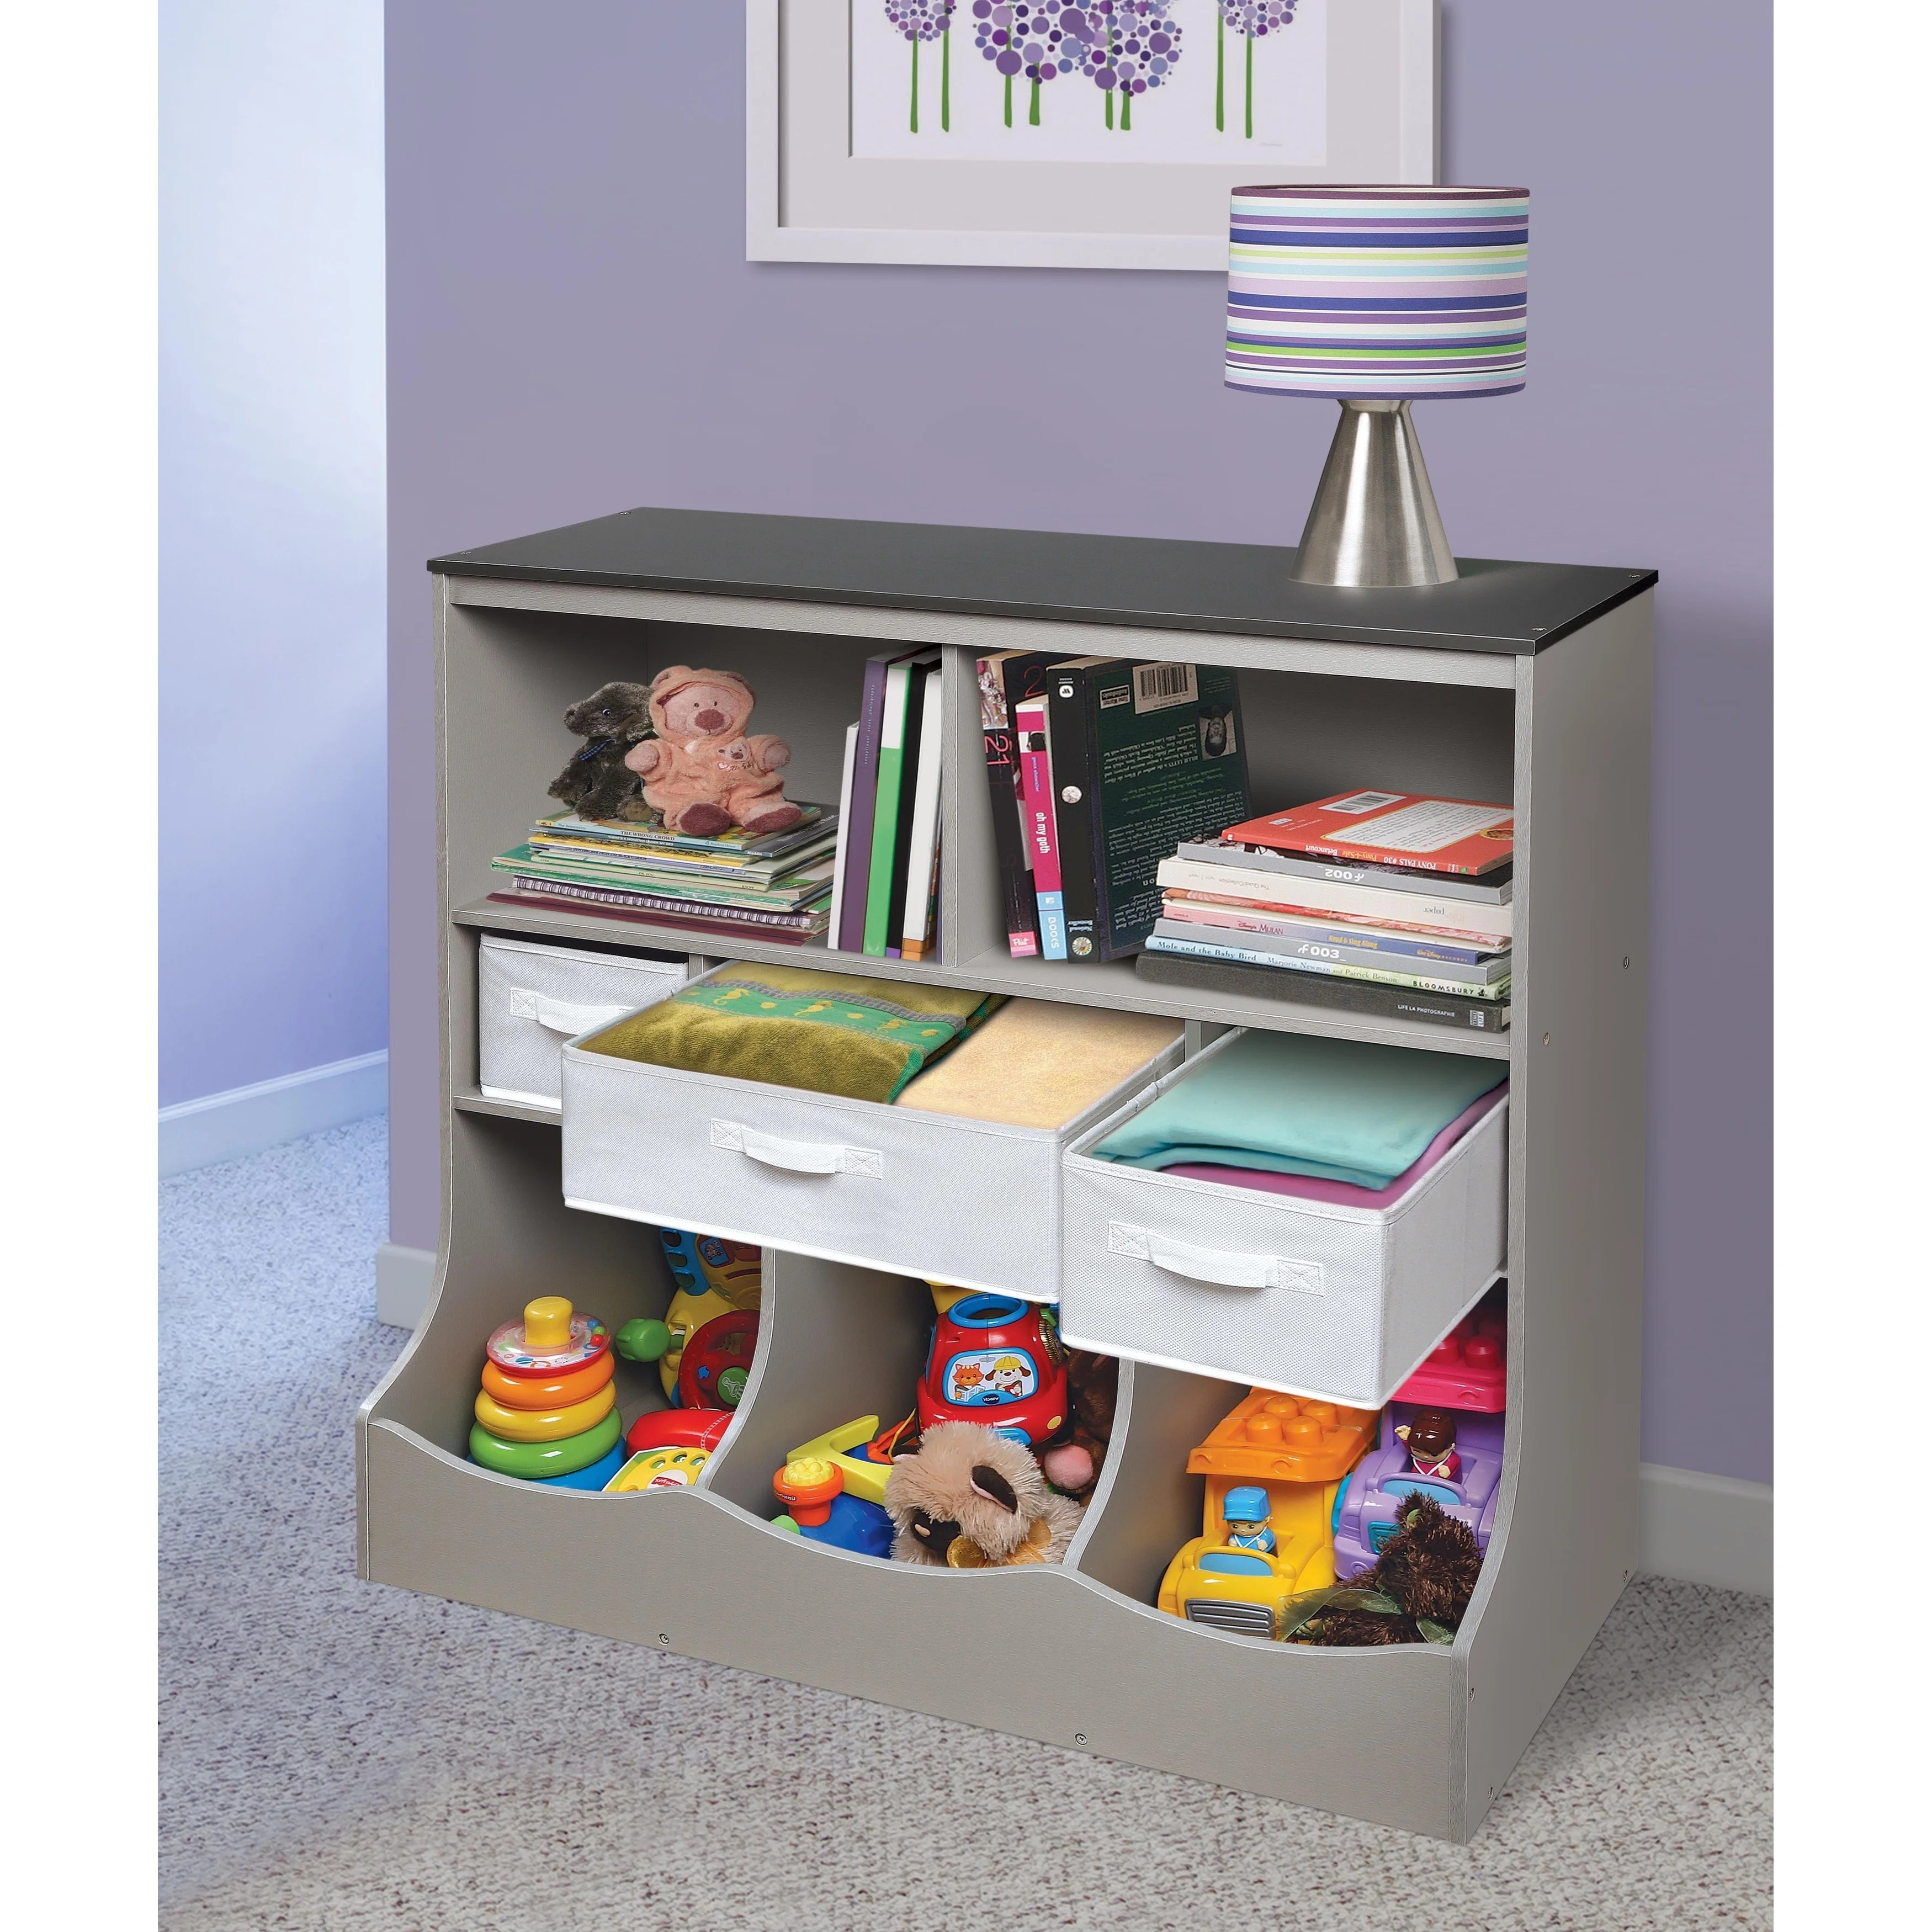 Bookshelves For Kids Buy Bookcases And Shelves Kids Storage Toy Boxes Online At